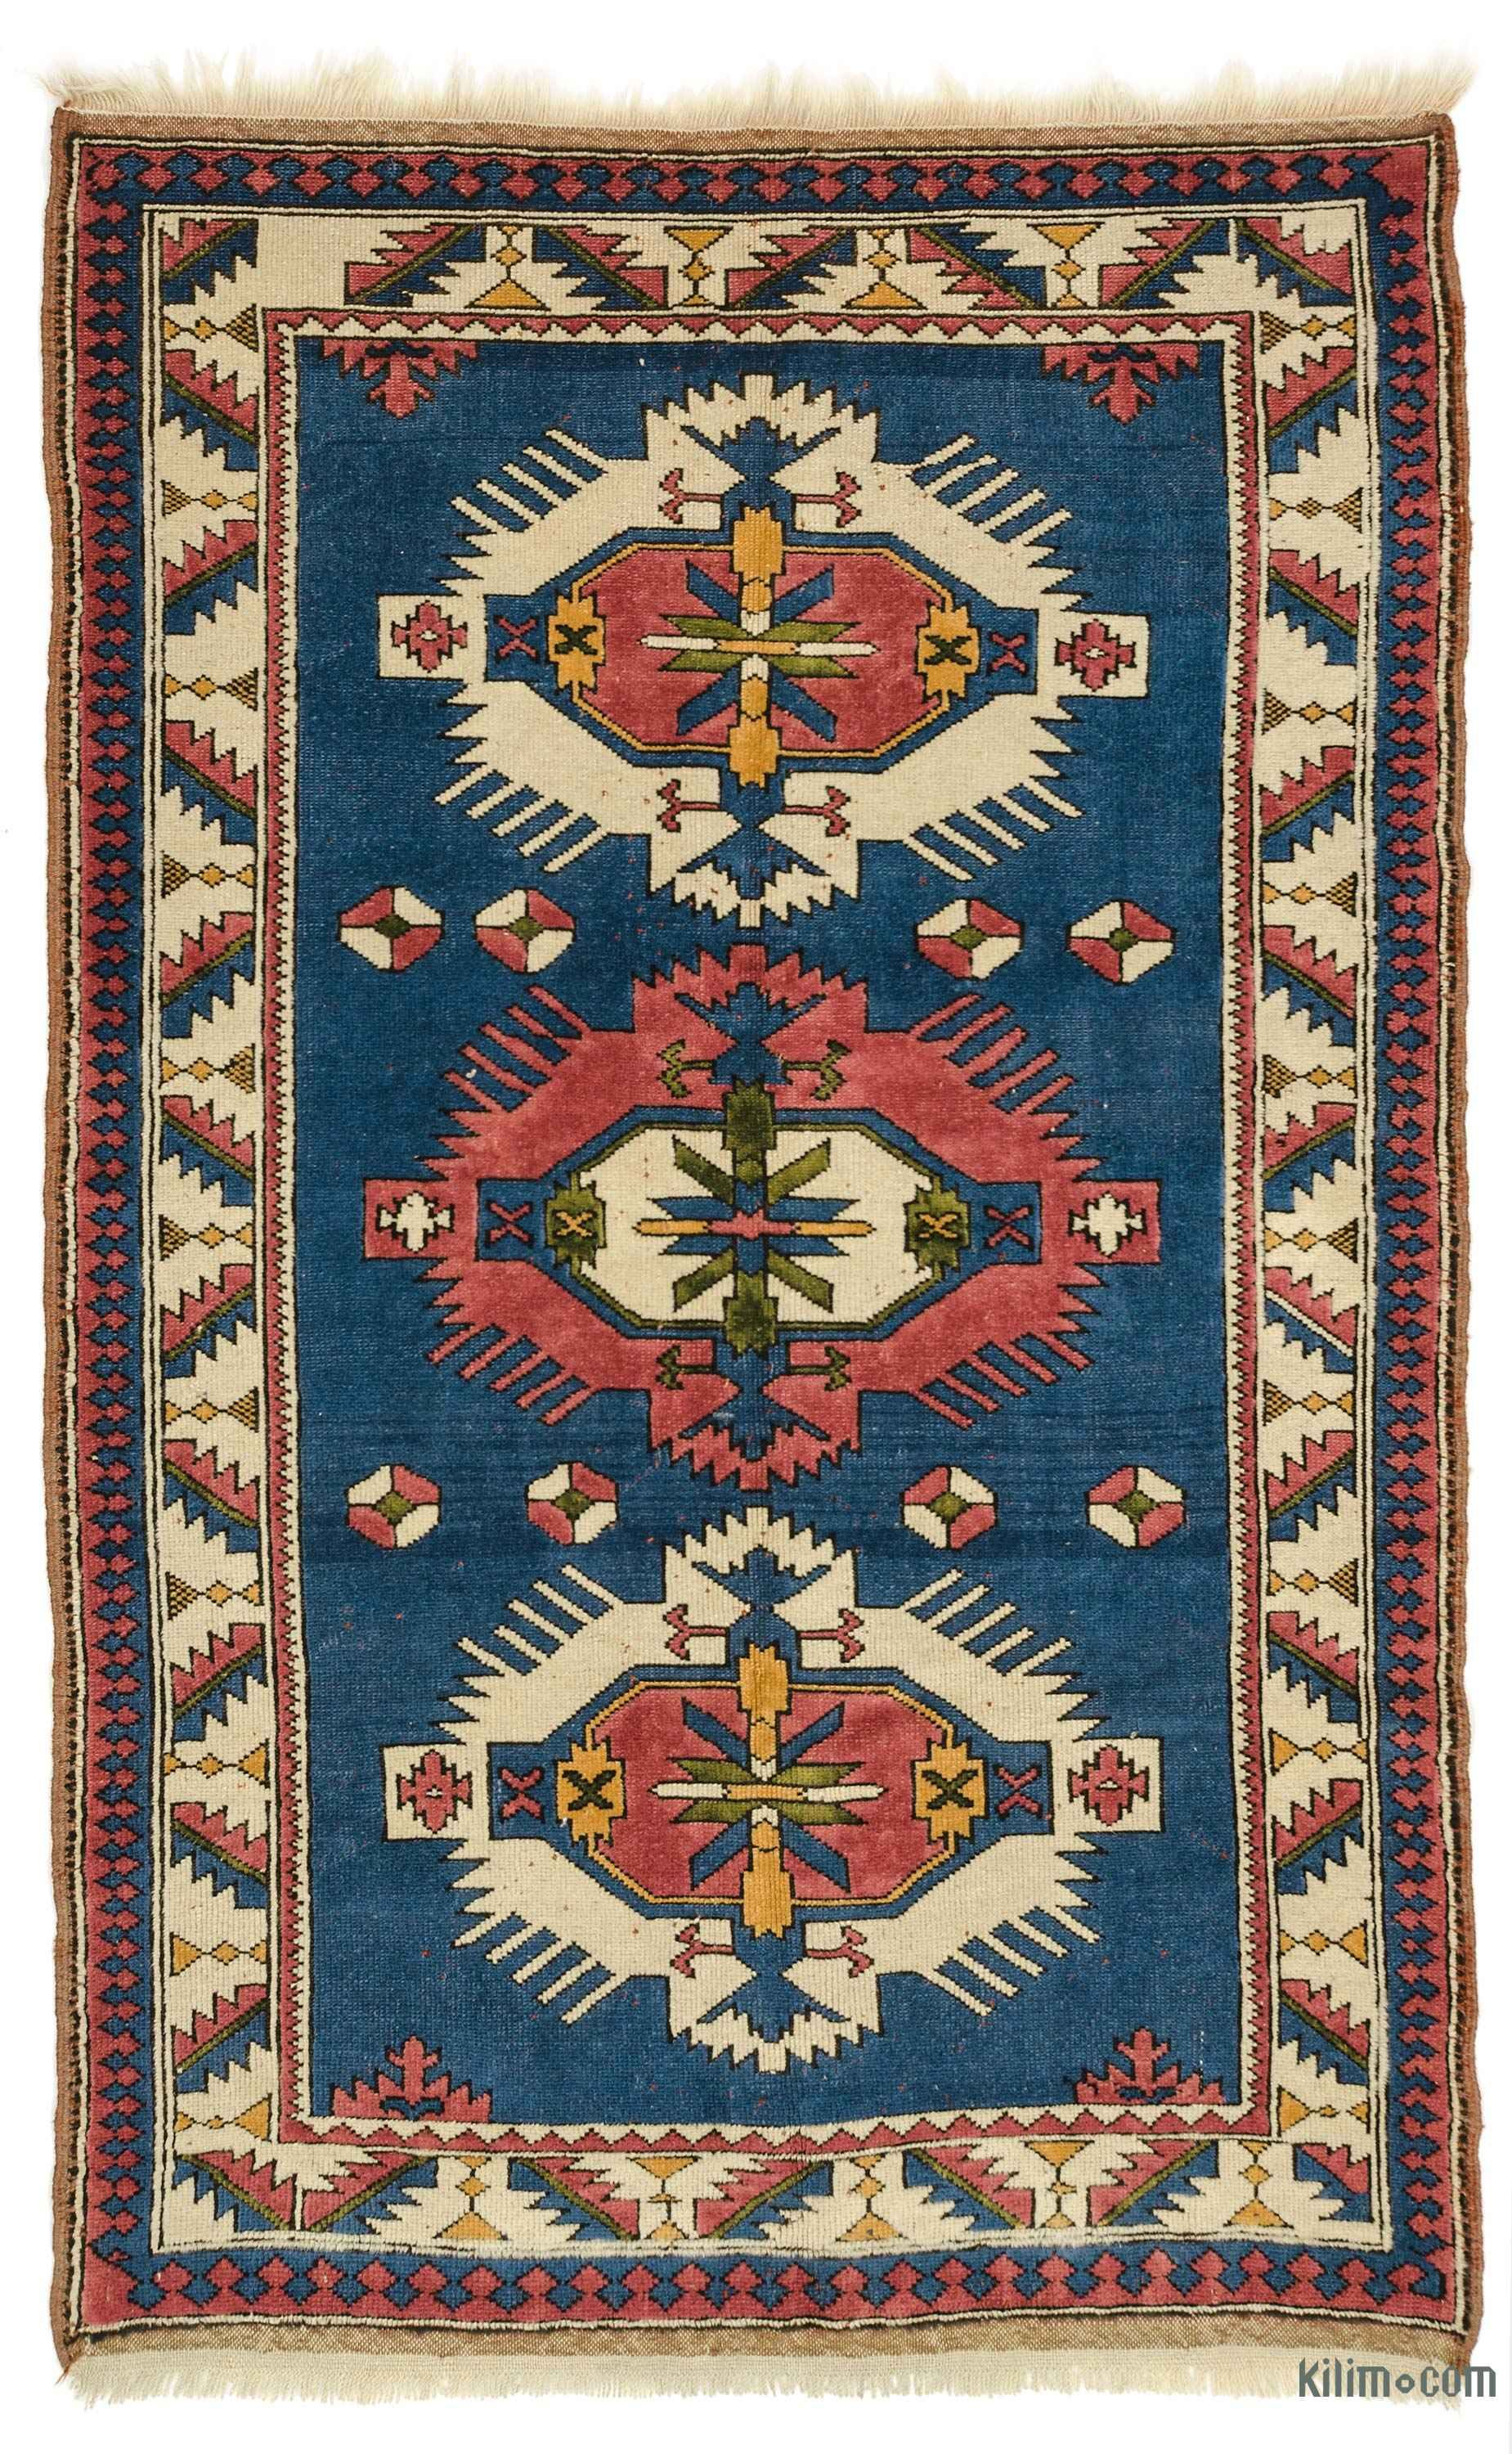 For A Contemporary Look With A Vintage Appeal We Source Oriental Rugs Hand Woven In The 60 S And 70 S In Excellent Cond Vintage Rugs Rugs Vintage Turkish Rugs